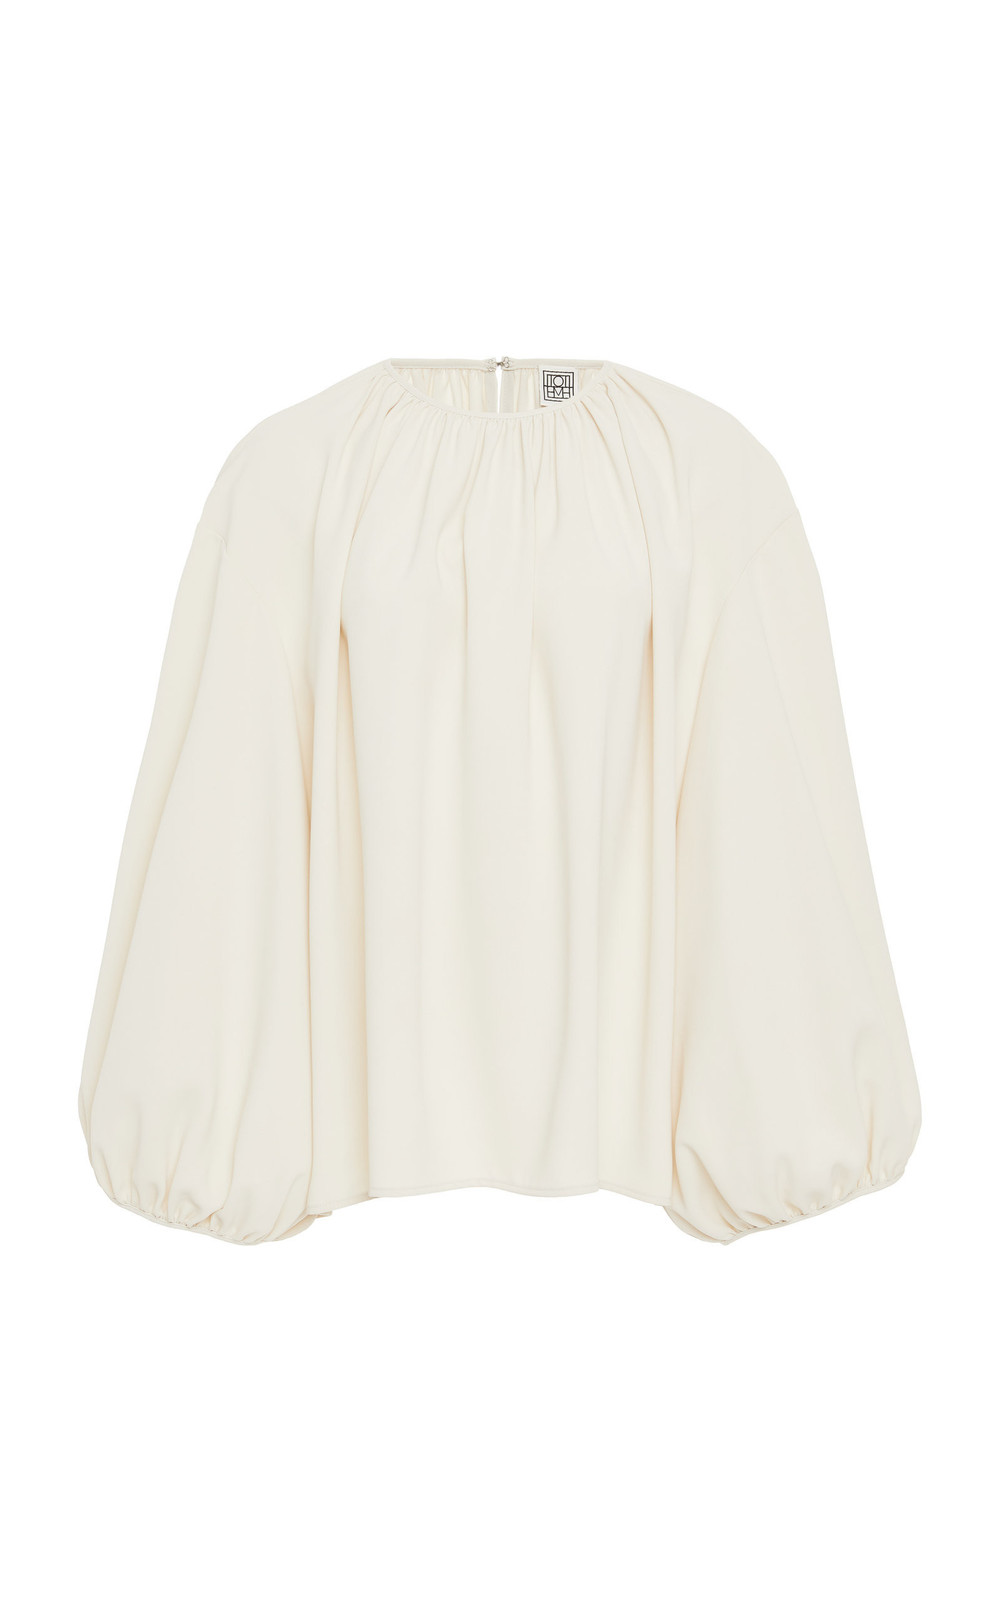 Toteme Pomerance Gathered Crepe Top in ivory